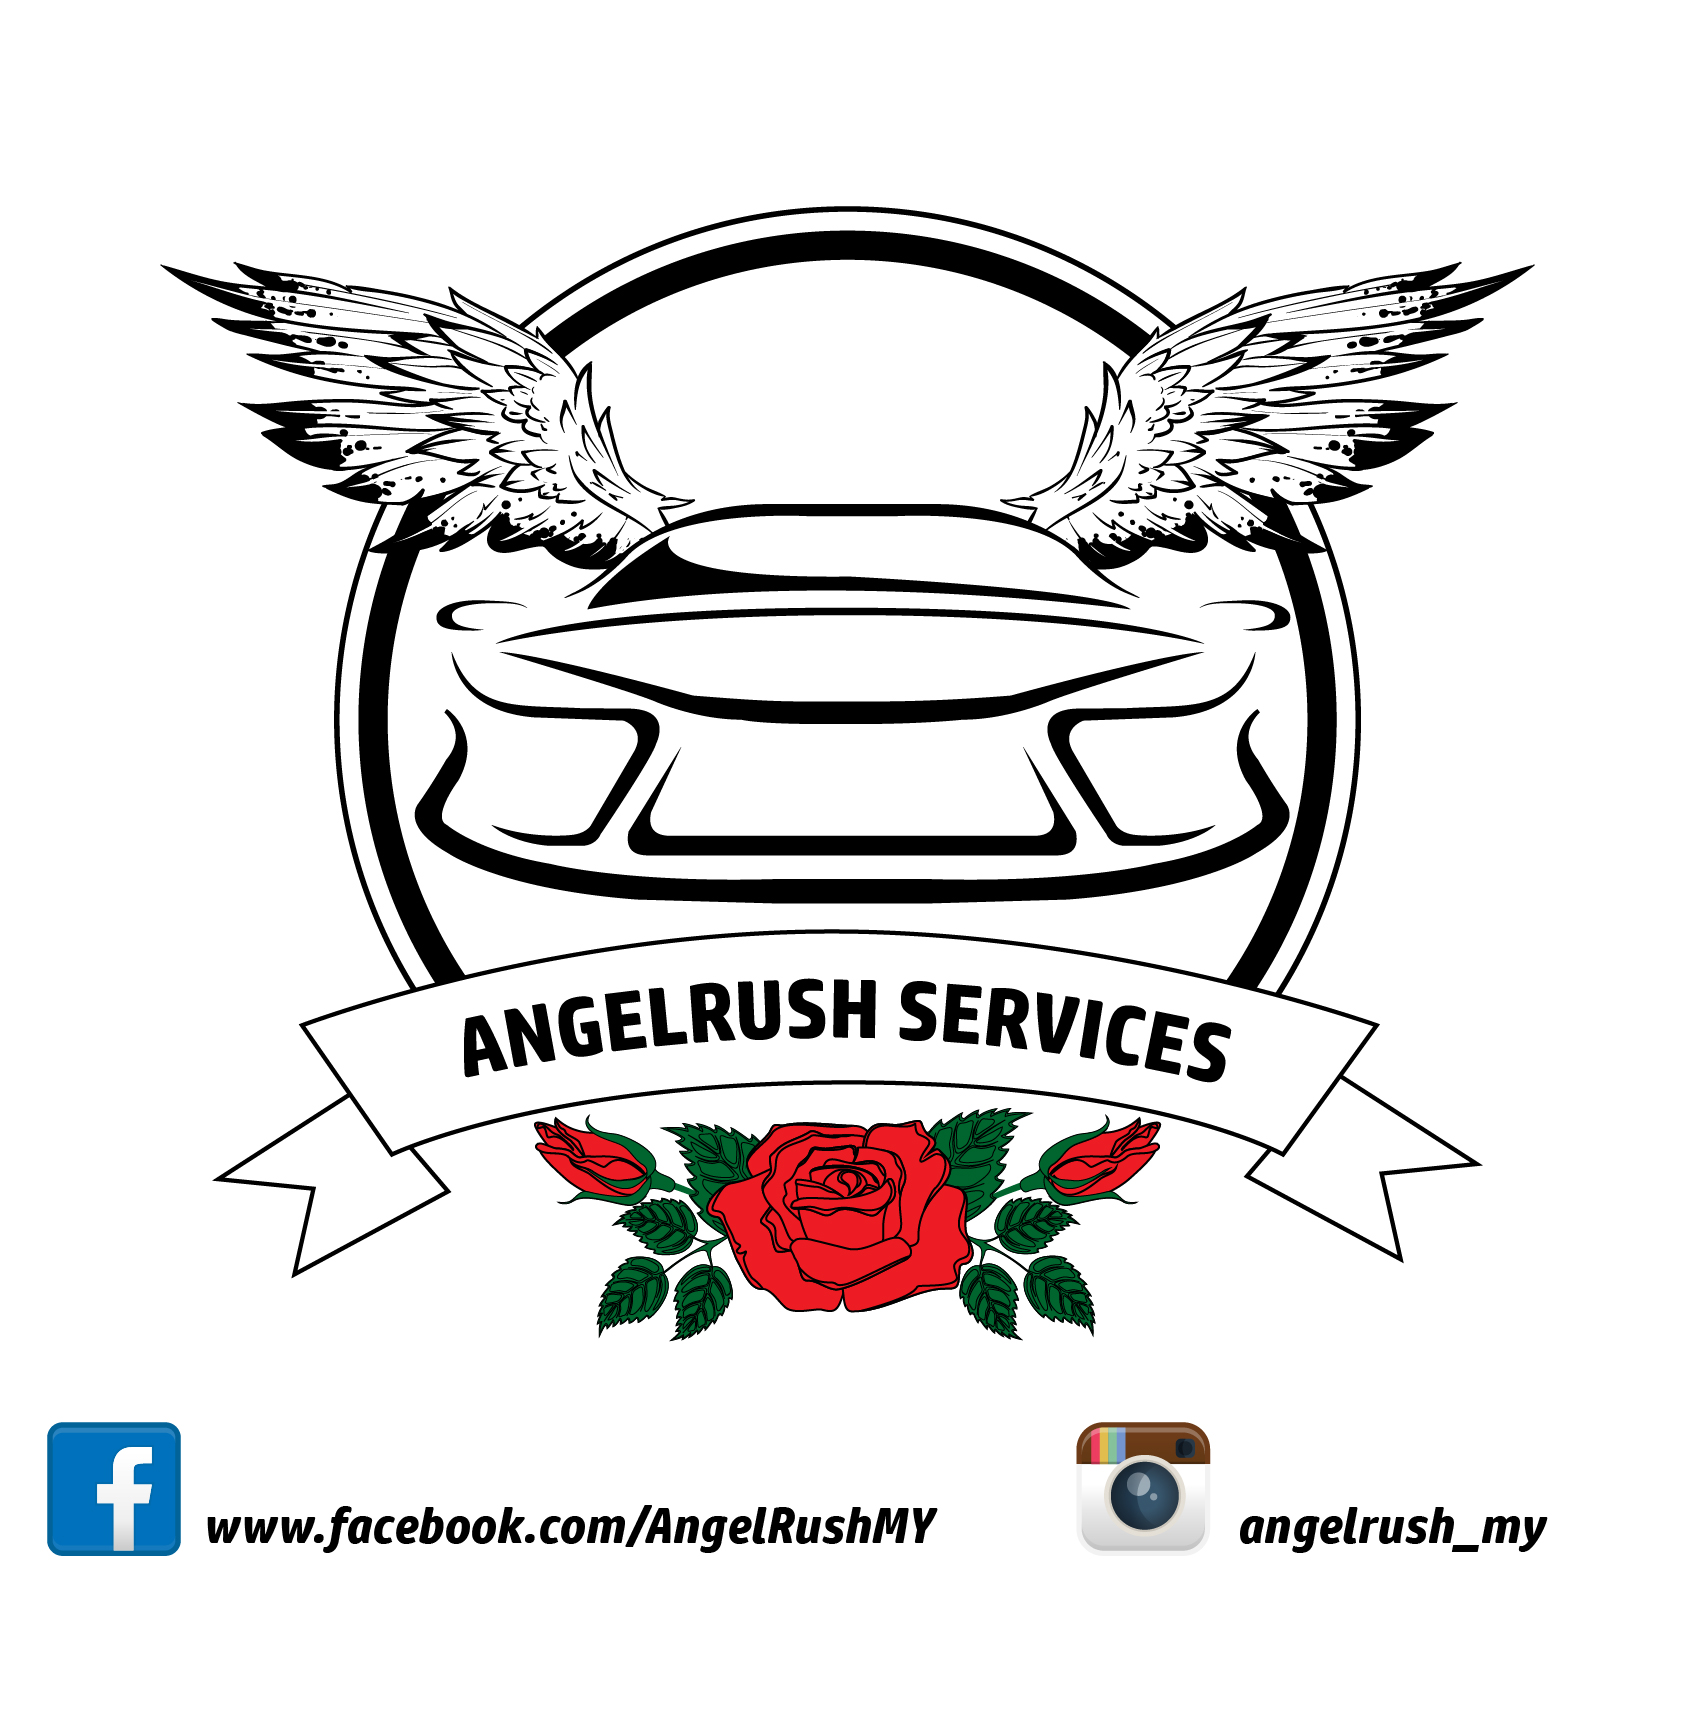 Angelrush Services